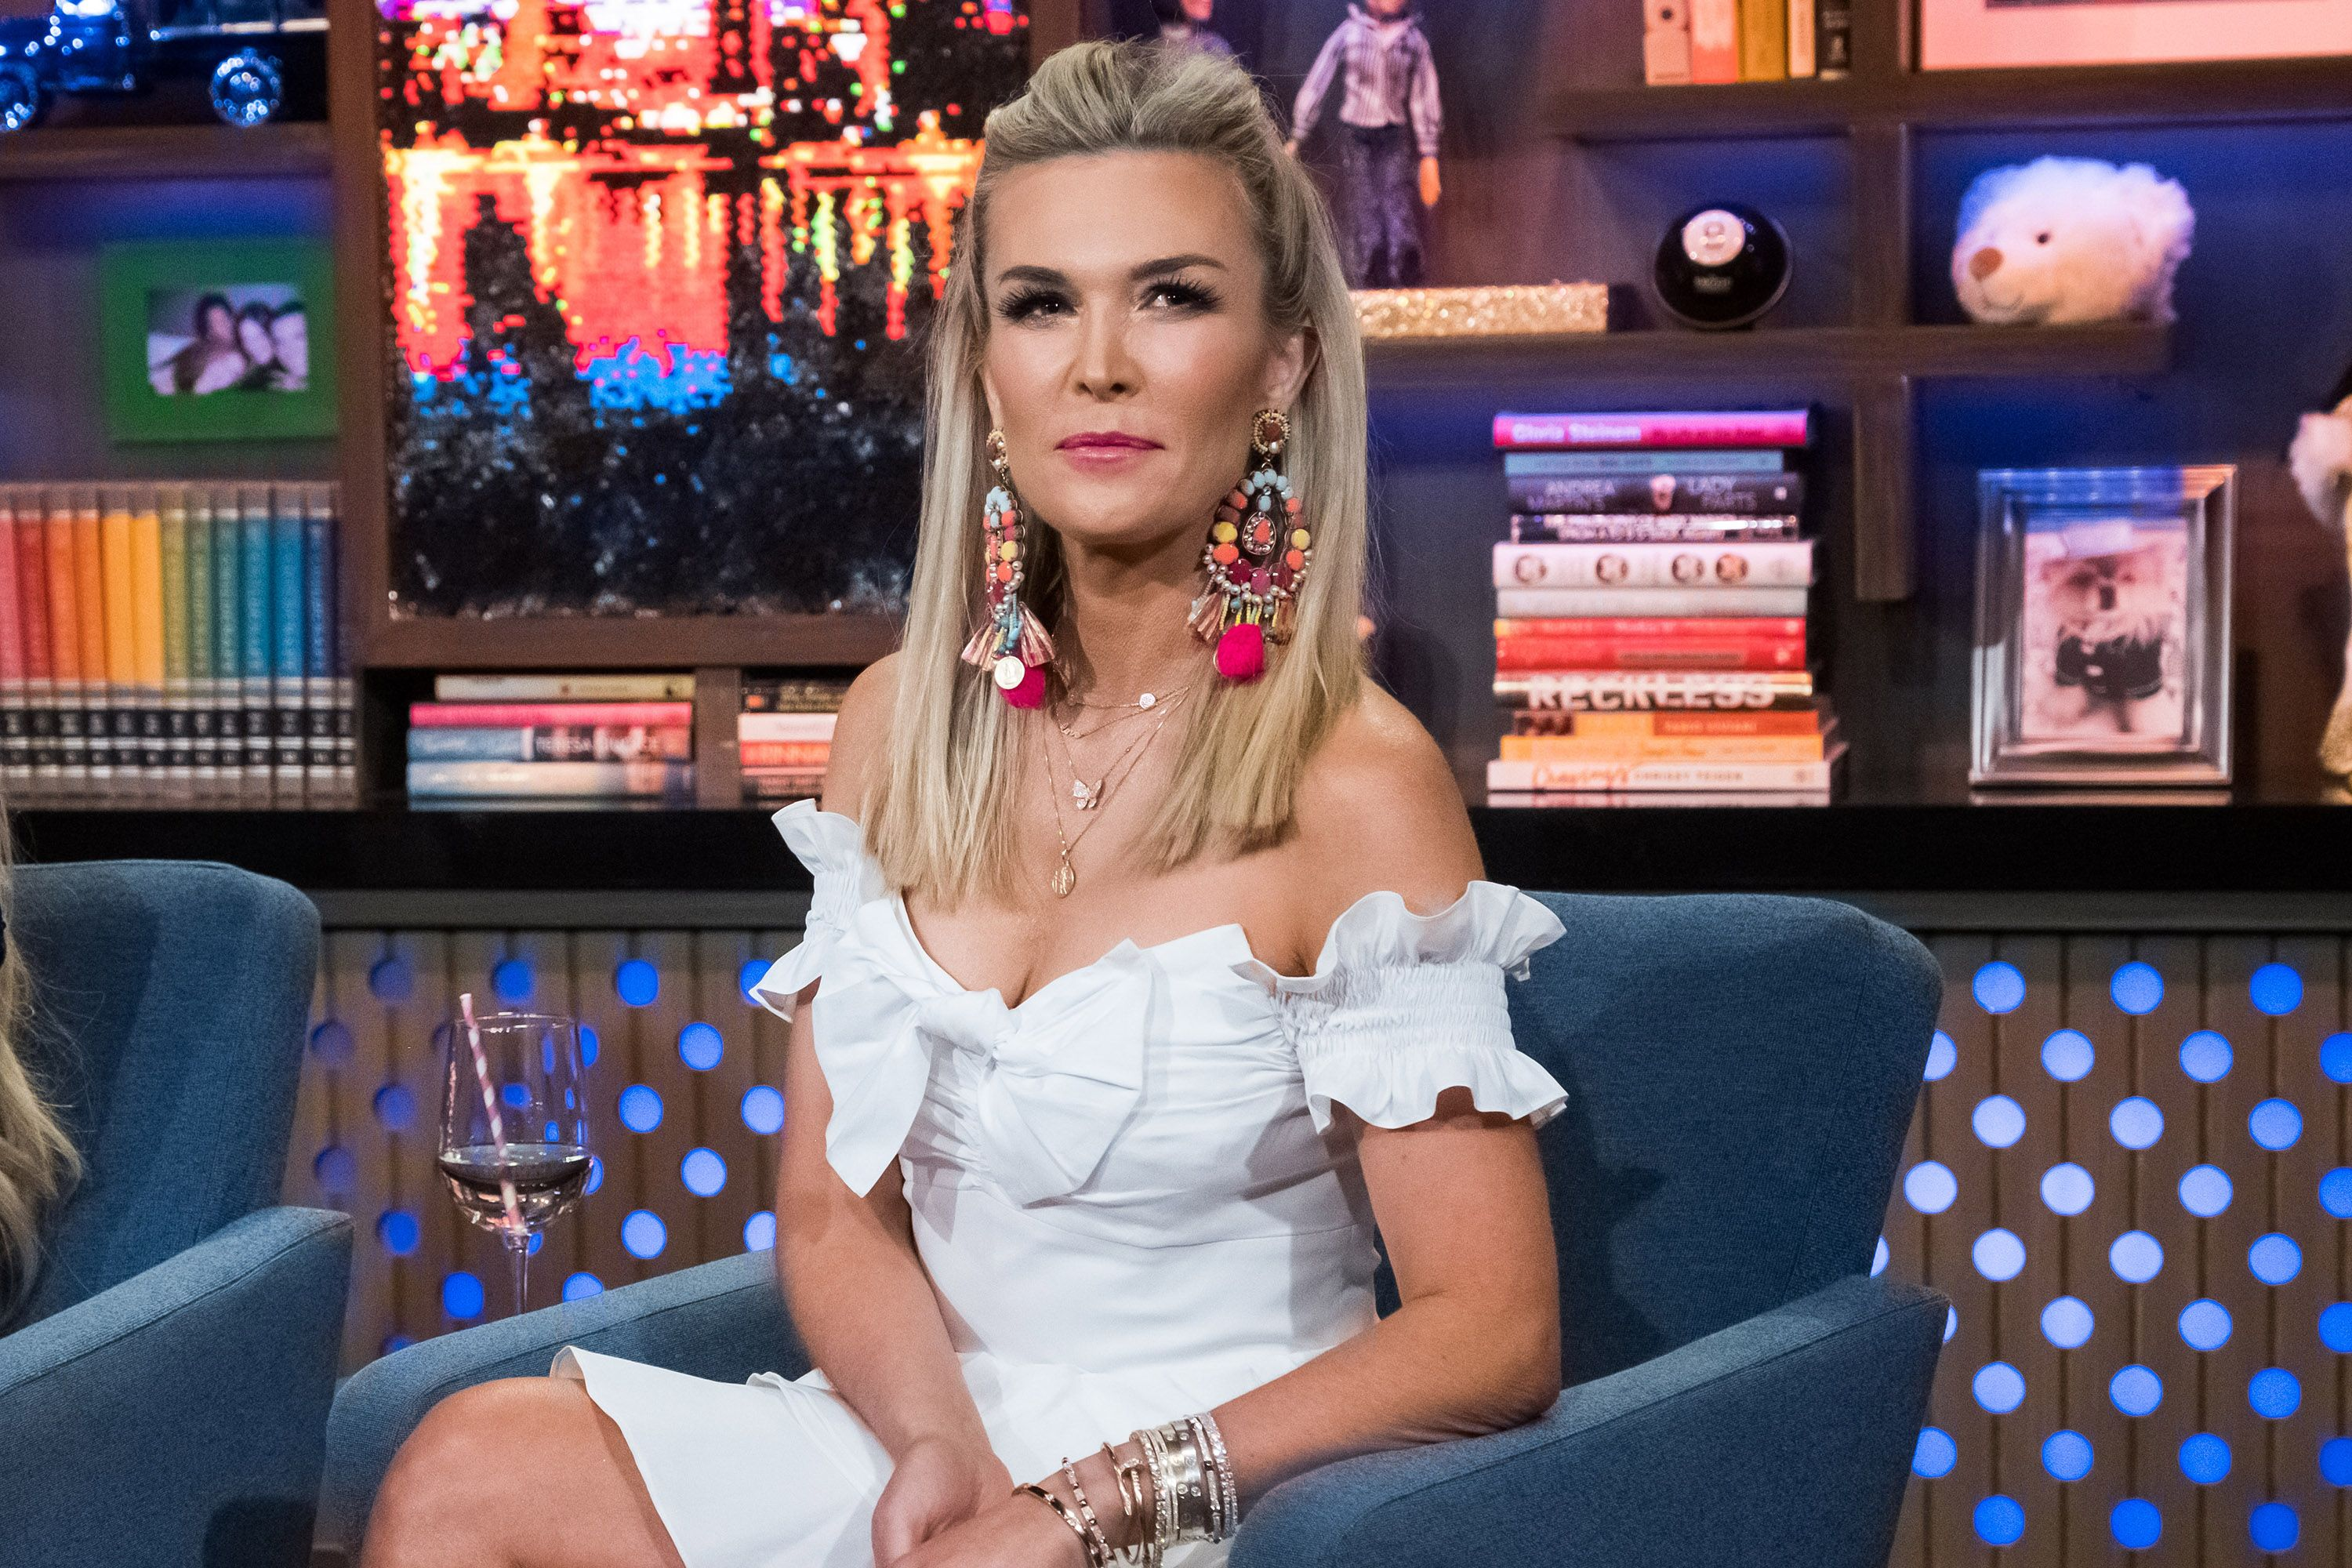 Tinsley Mortimer's Relationship History Is Filled With More Drama Than A 'RHONY' Reunion